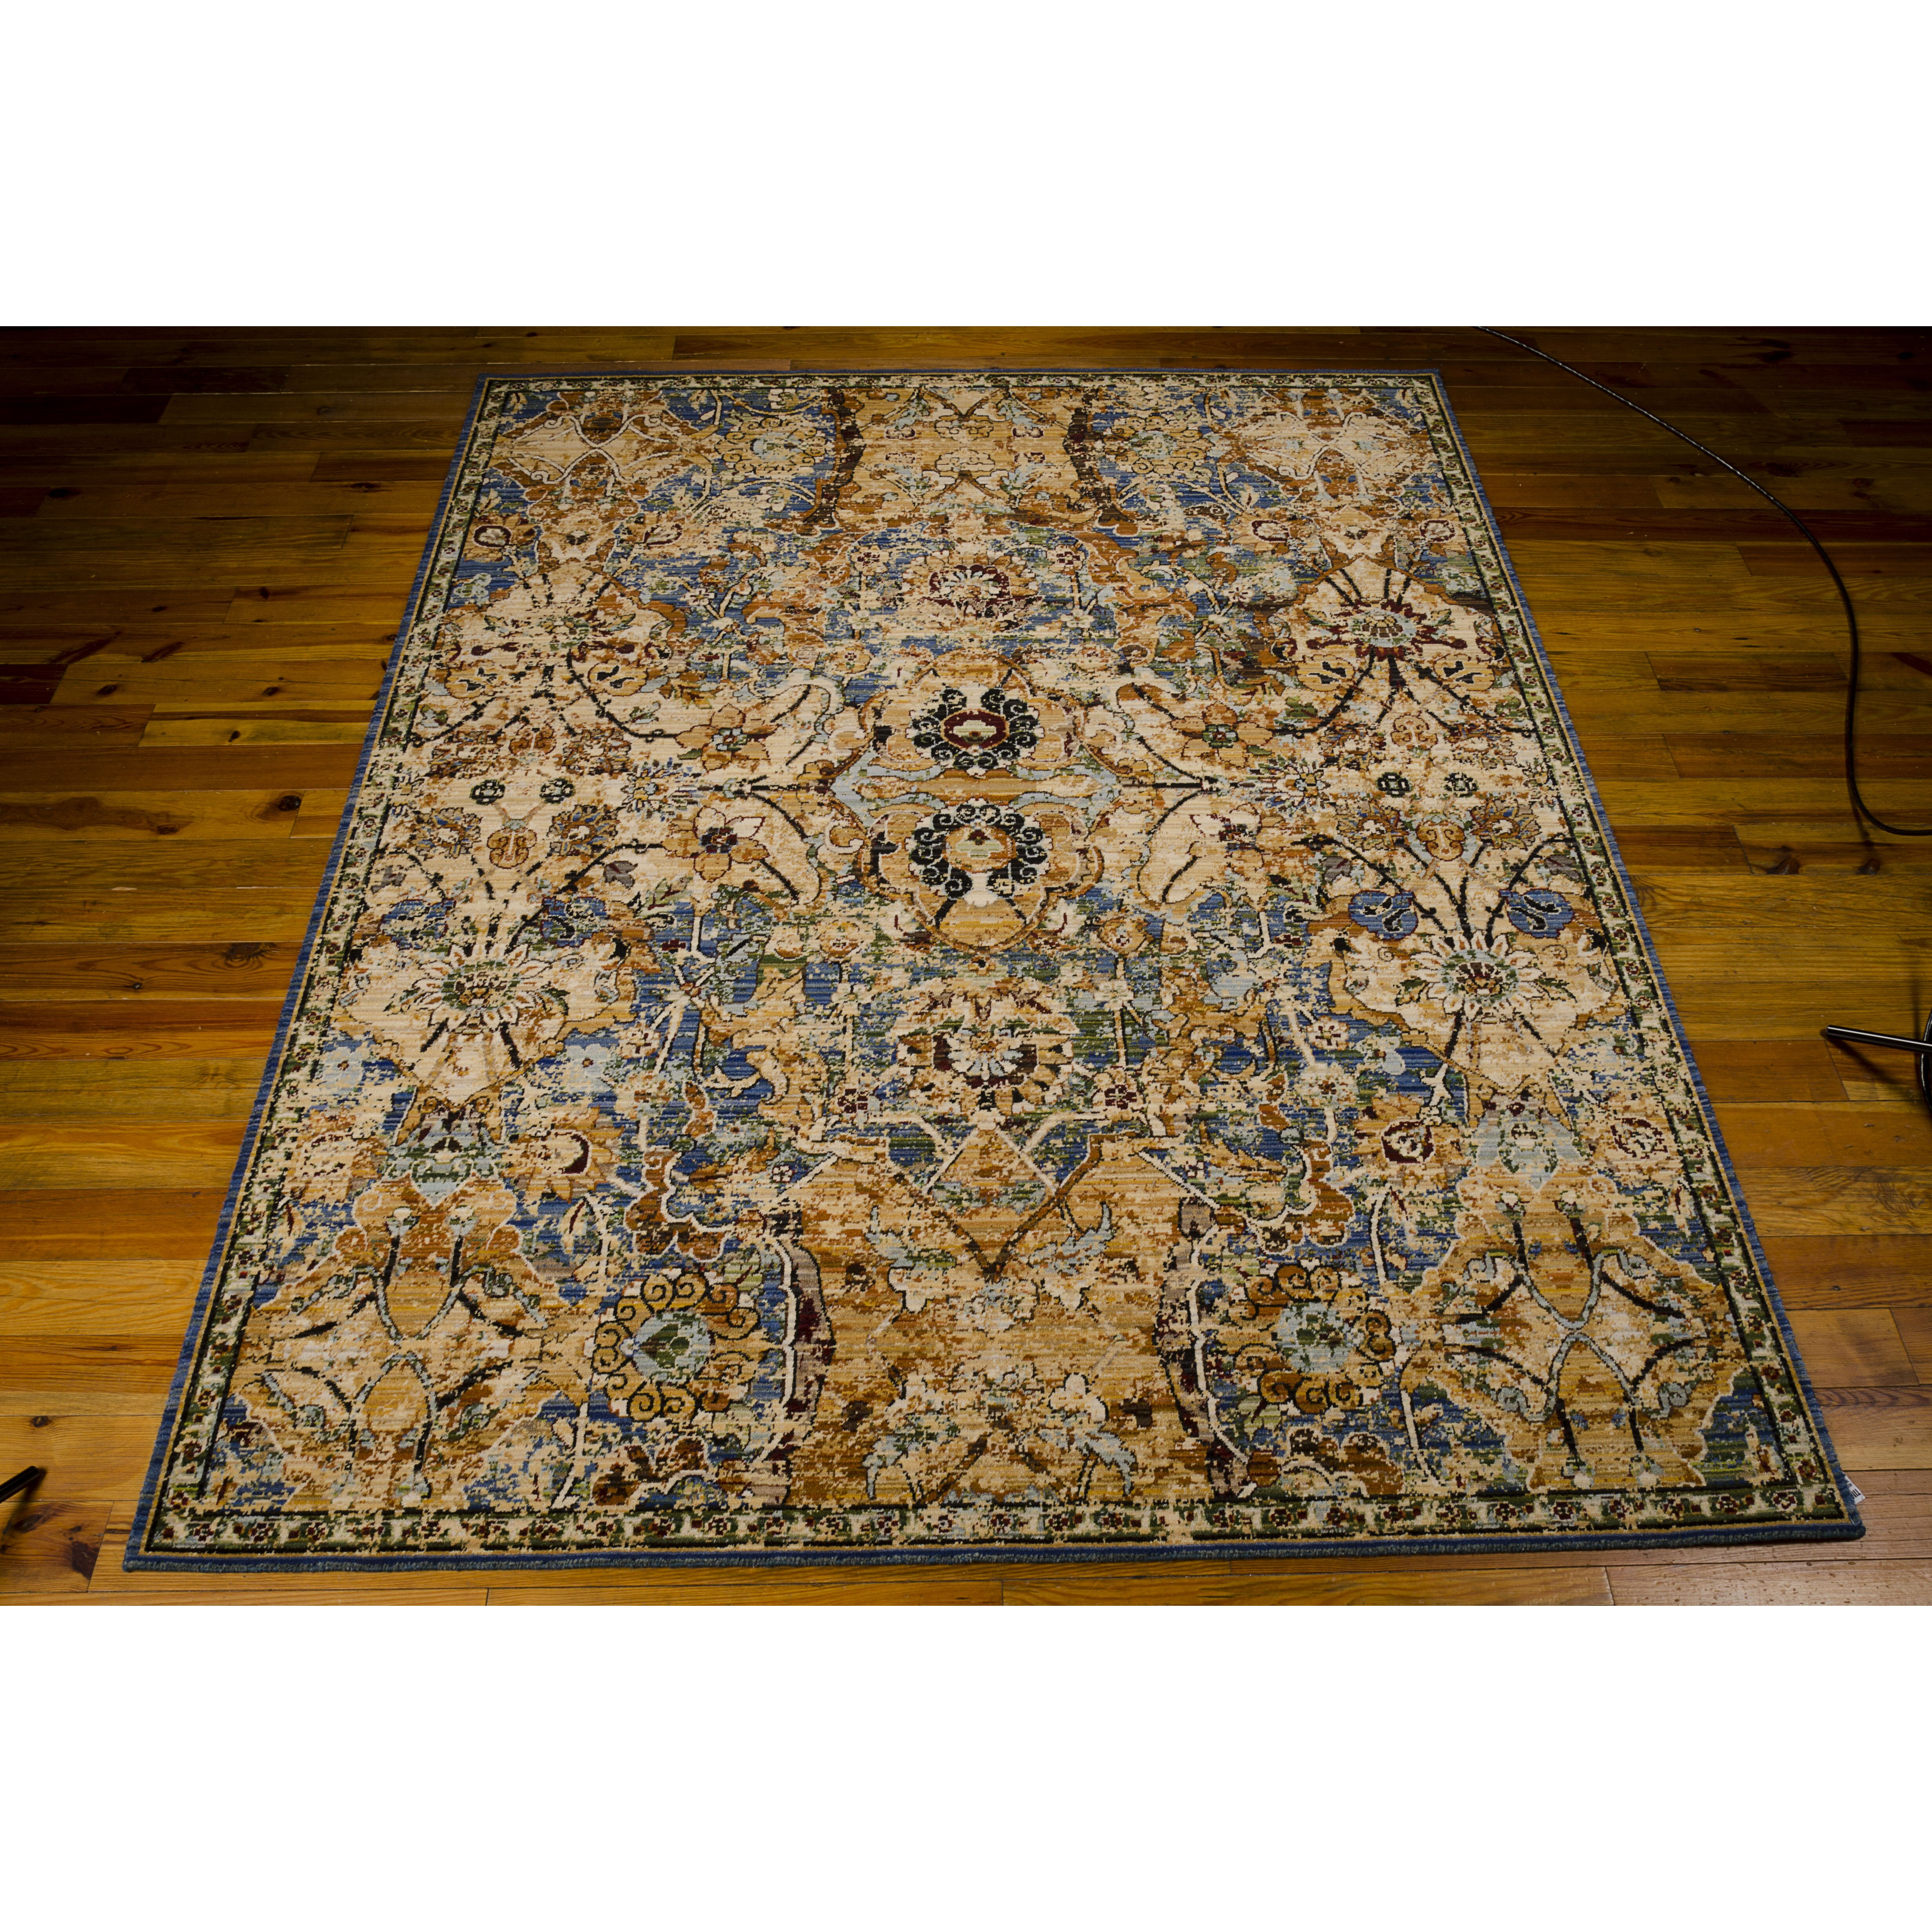 Eternal Peacock Floral And Geometric Area Rug